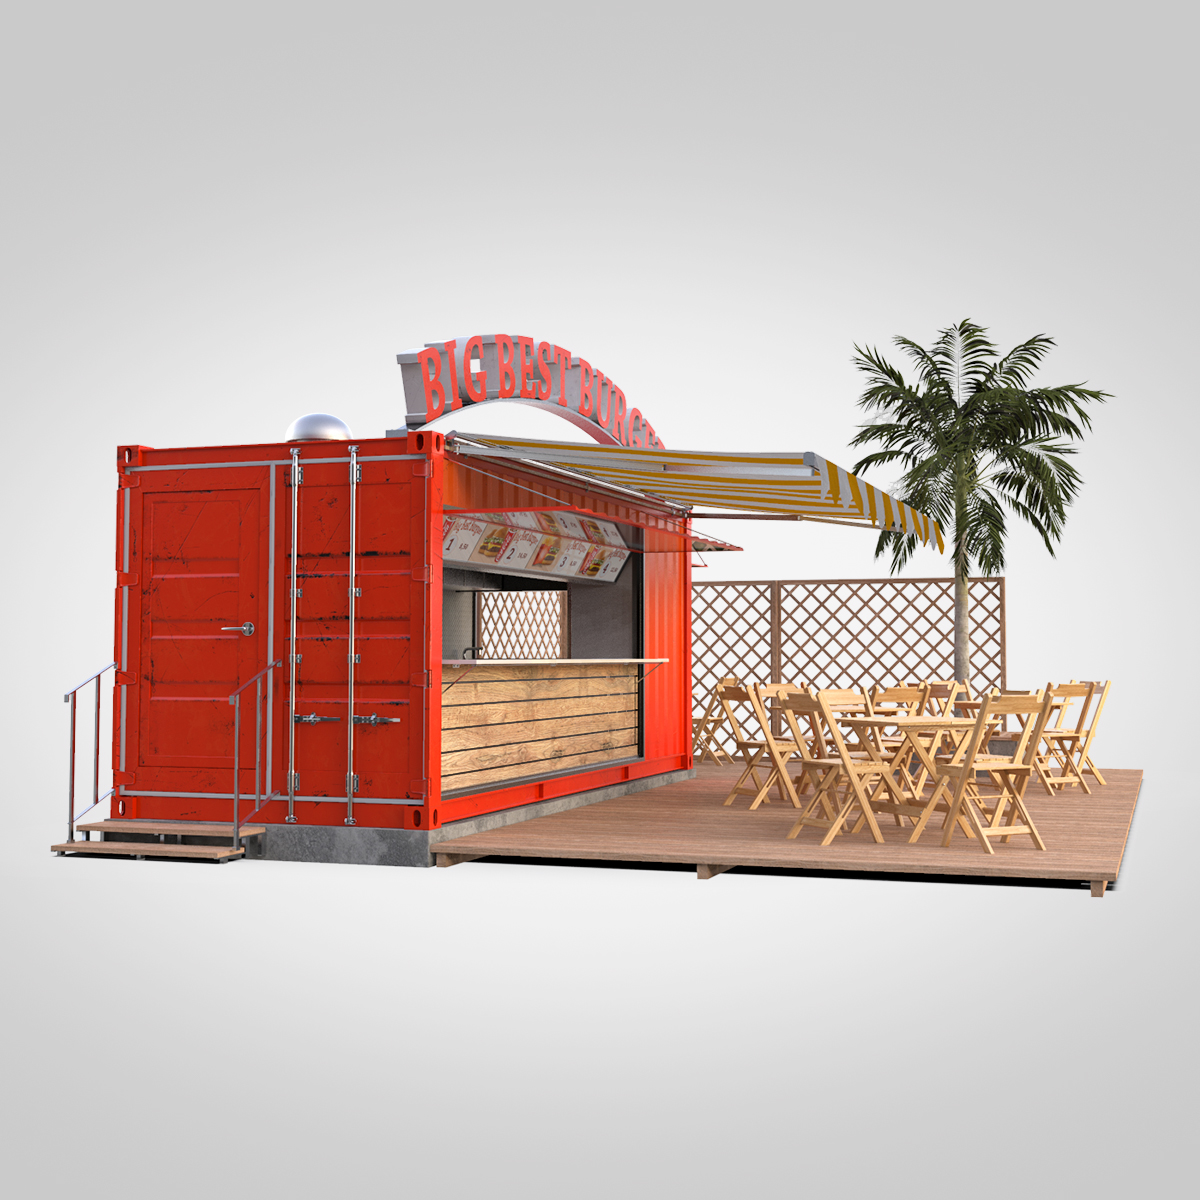 shipping container food stand 3d model max fbx ma mb texture obj 278559